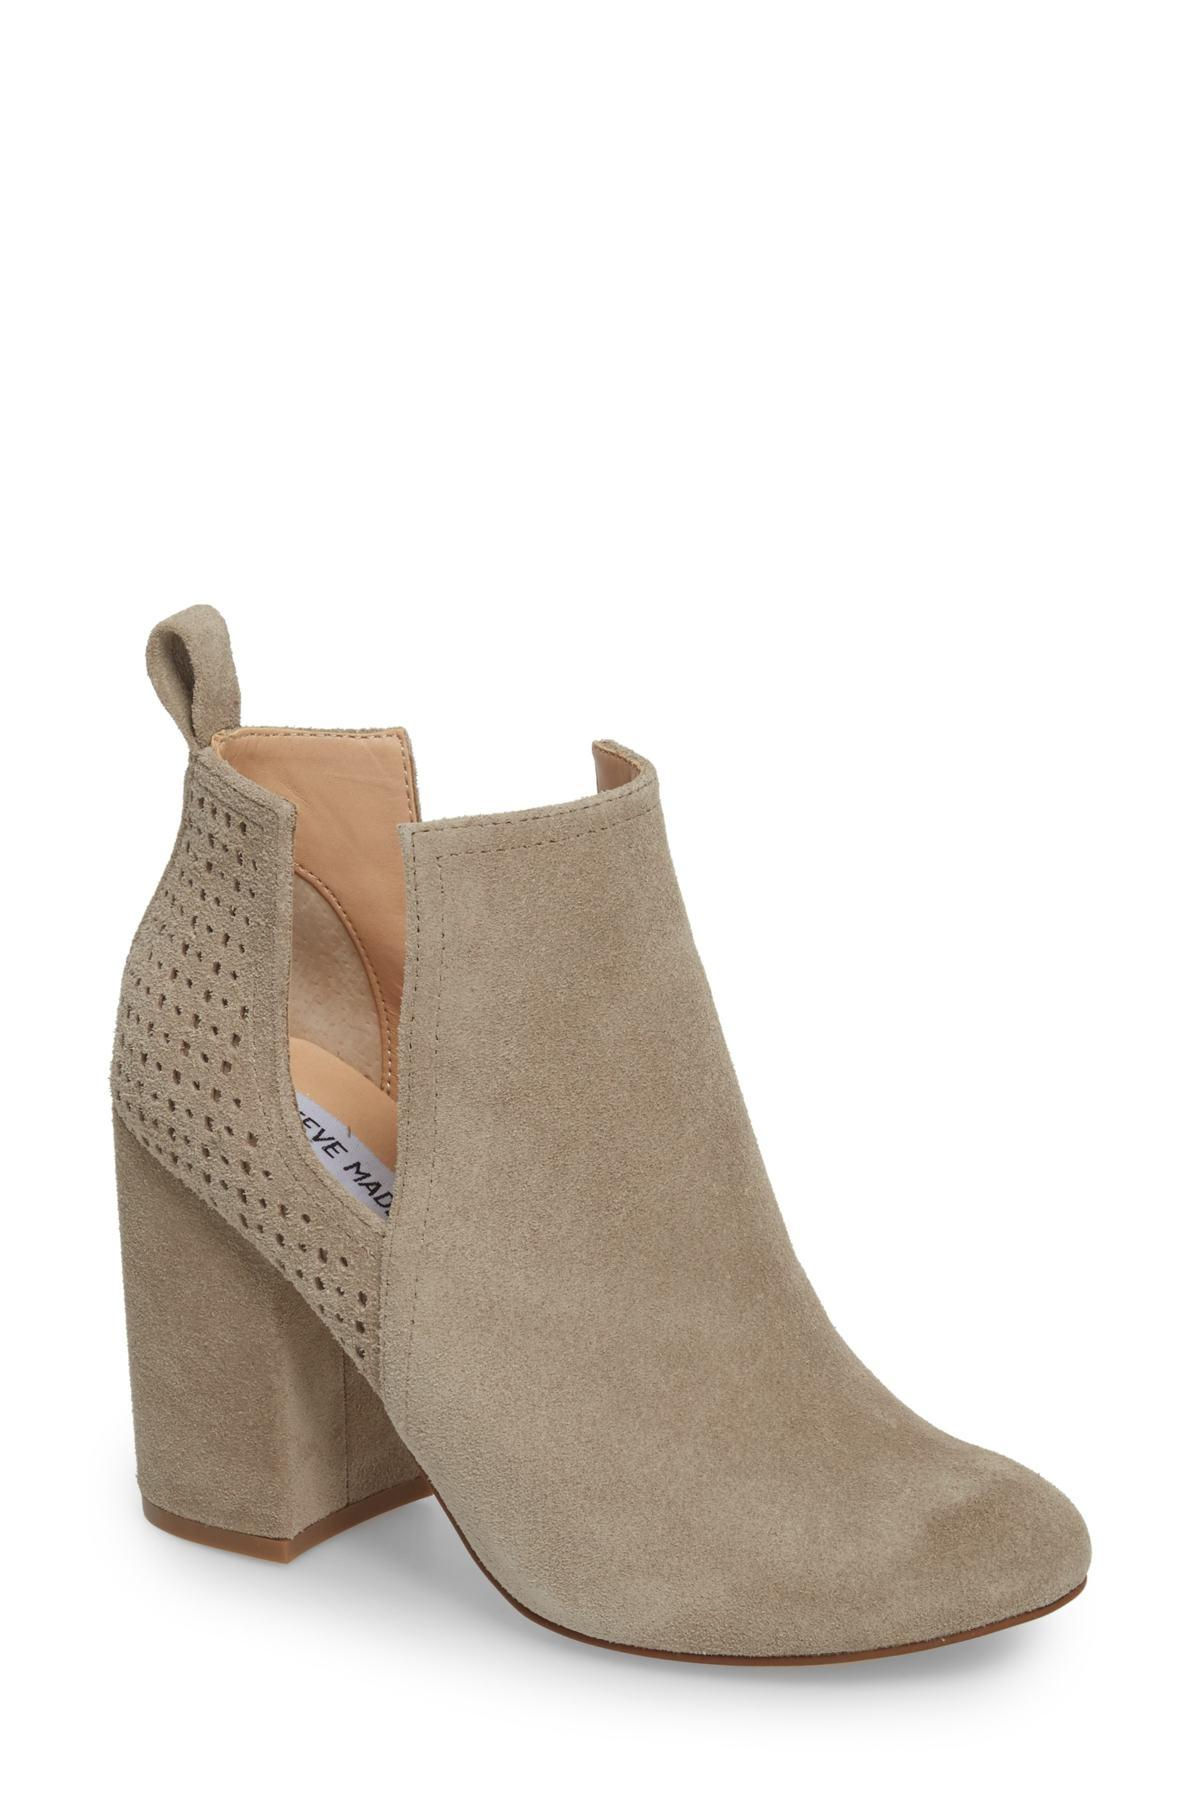 b3359a6202d Lyst - Steve Madden Nomad Bootie (women) in Brown - Save ...